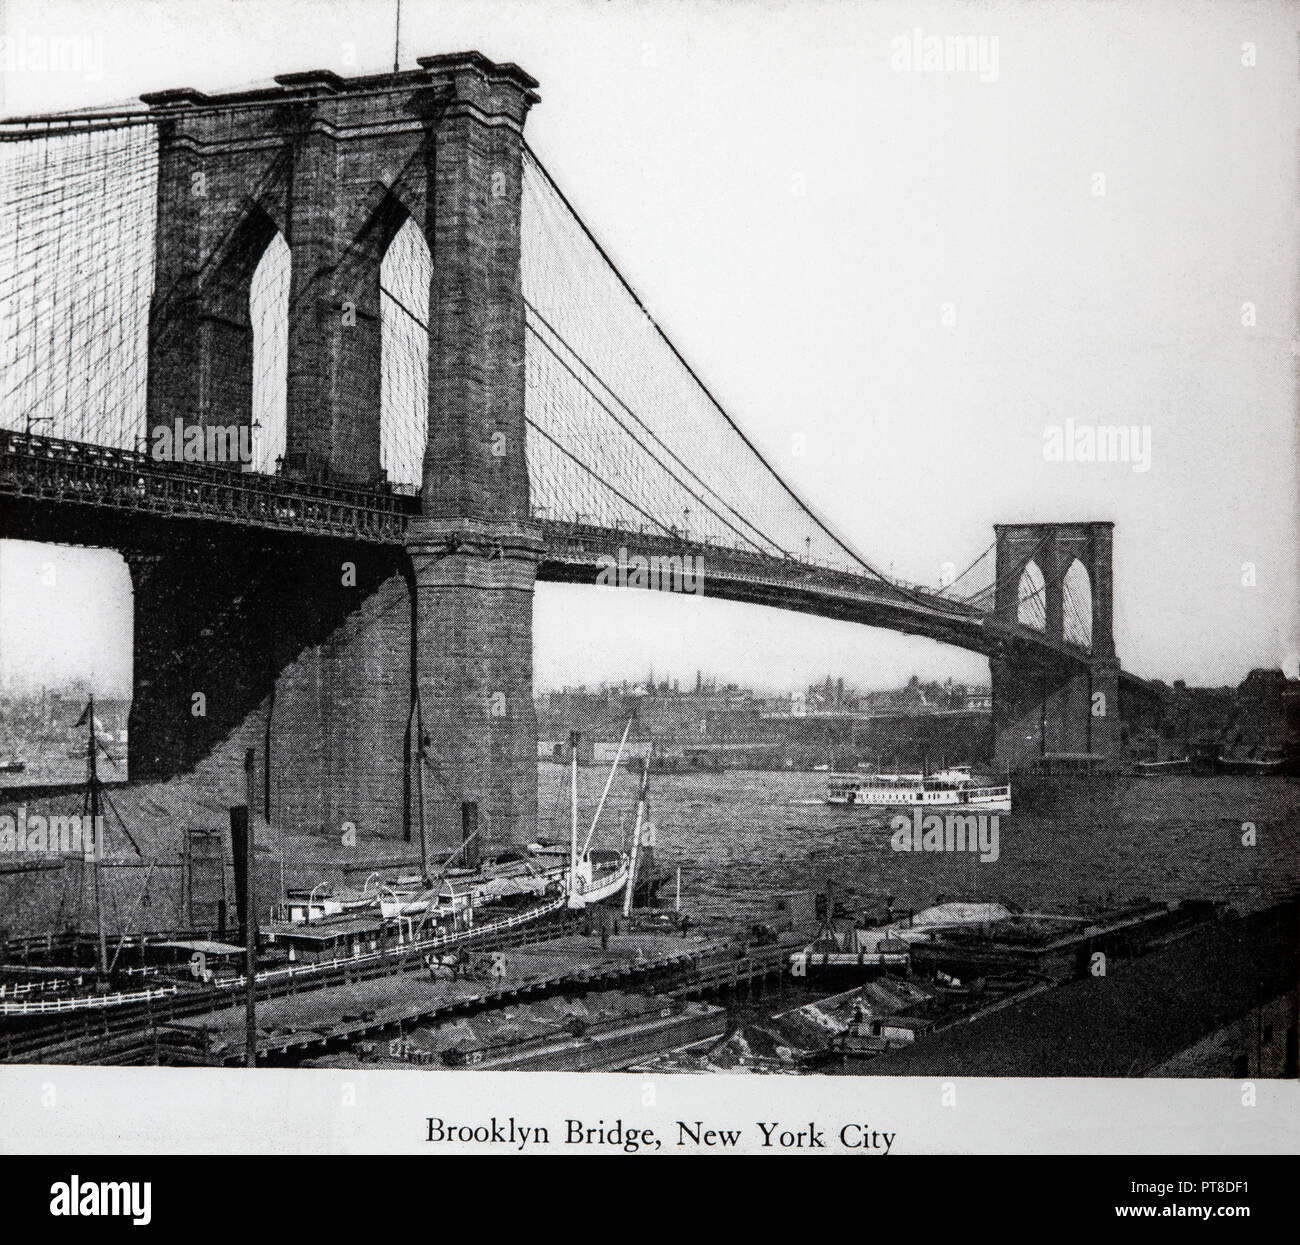 A late 19th or early 20th century black and white photograph of the brooklyn bridge in new york usa